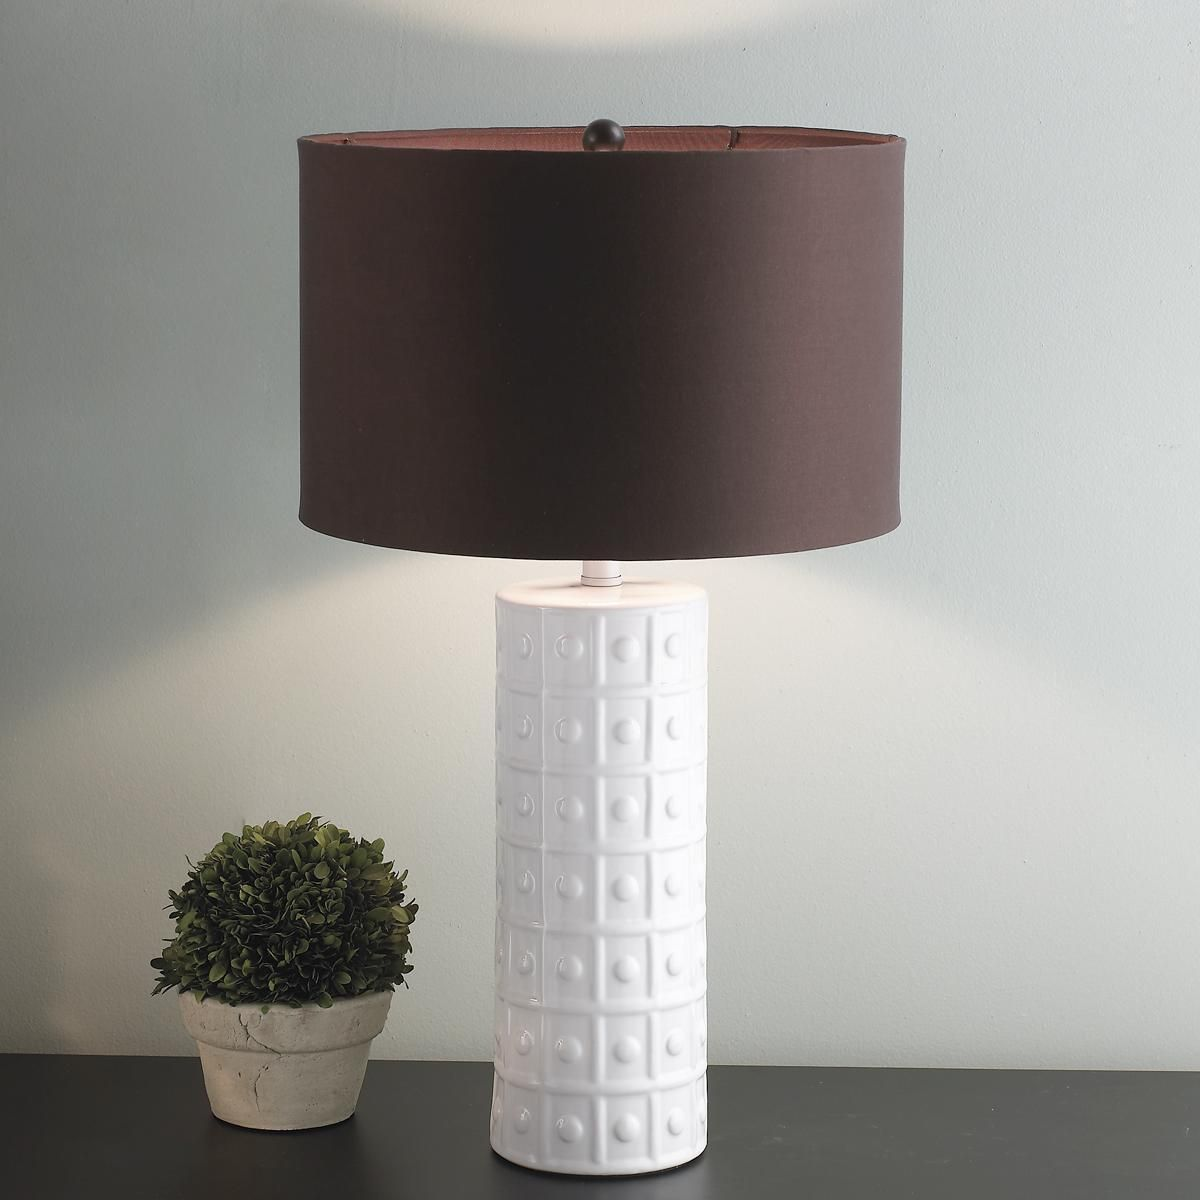 Studded Ceramic Table Lamp Chocolate Brown Shade Need To Find Less Expensive 519 Ea